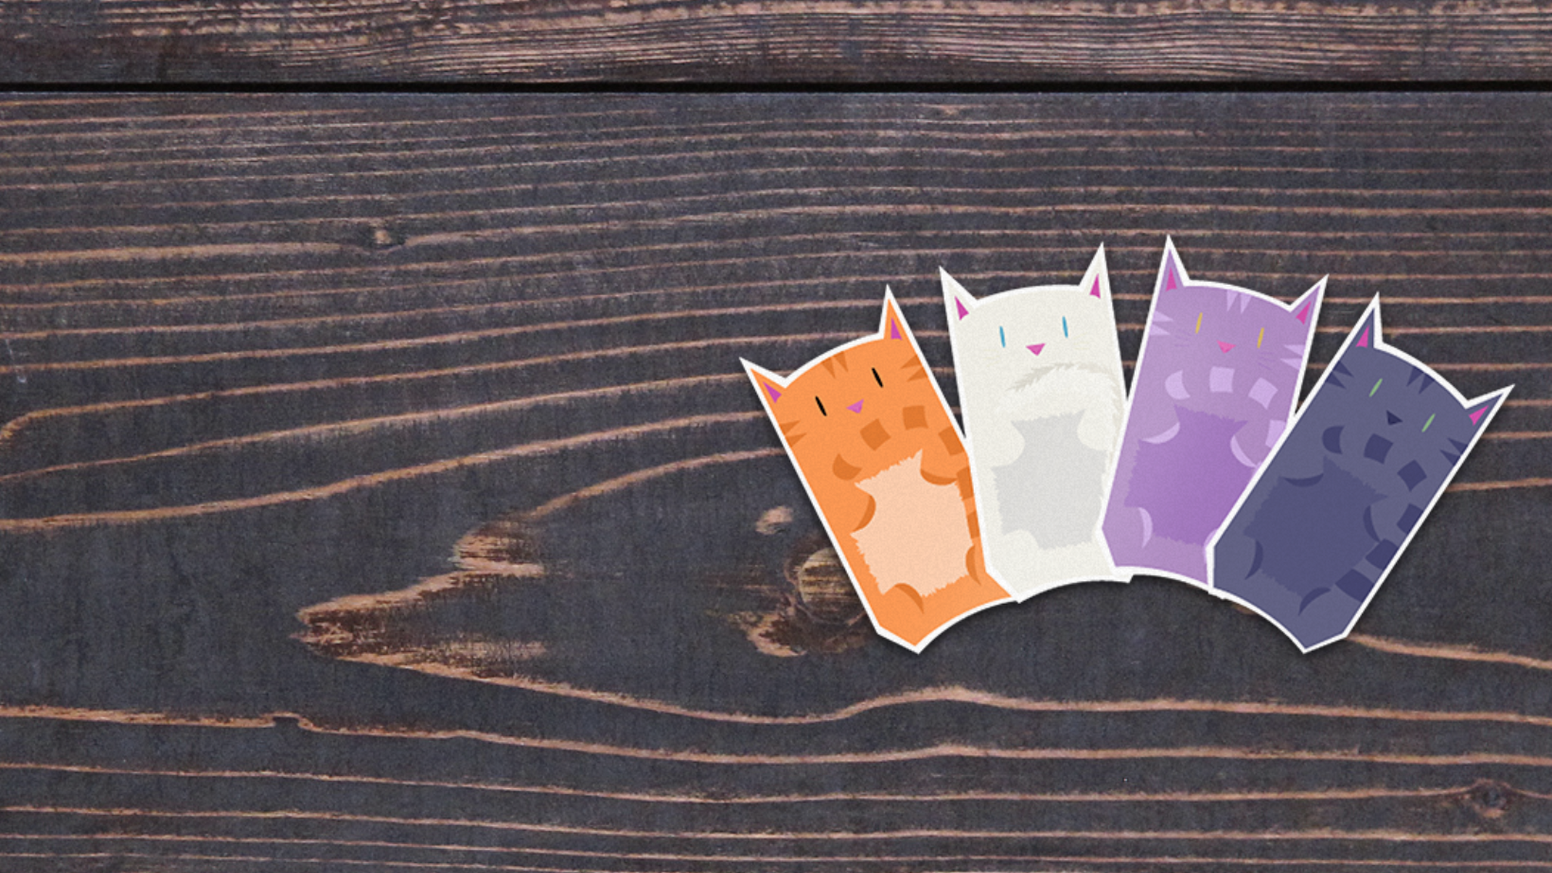 I've never had my art turned into stickers, and stickers are never fun unless you share them with others! Update: Thank you so much - we did it!! I'll now be sharing my stickers with so many people across the globe. :)